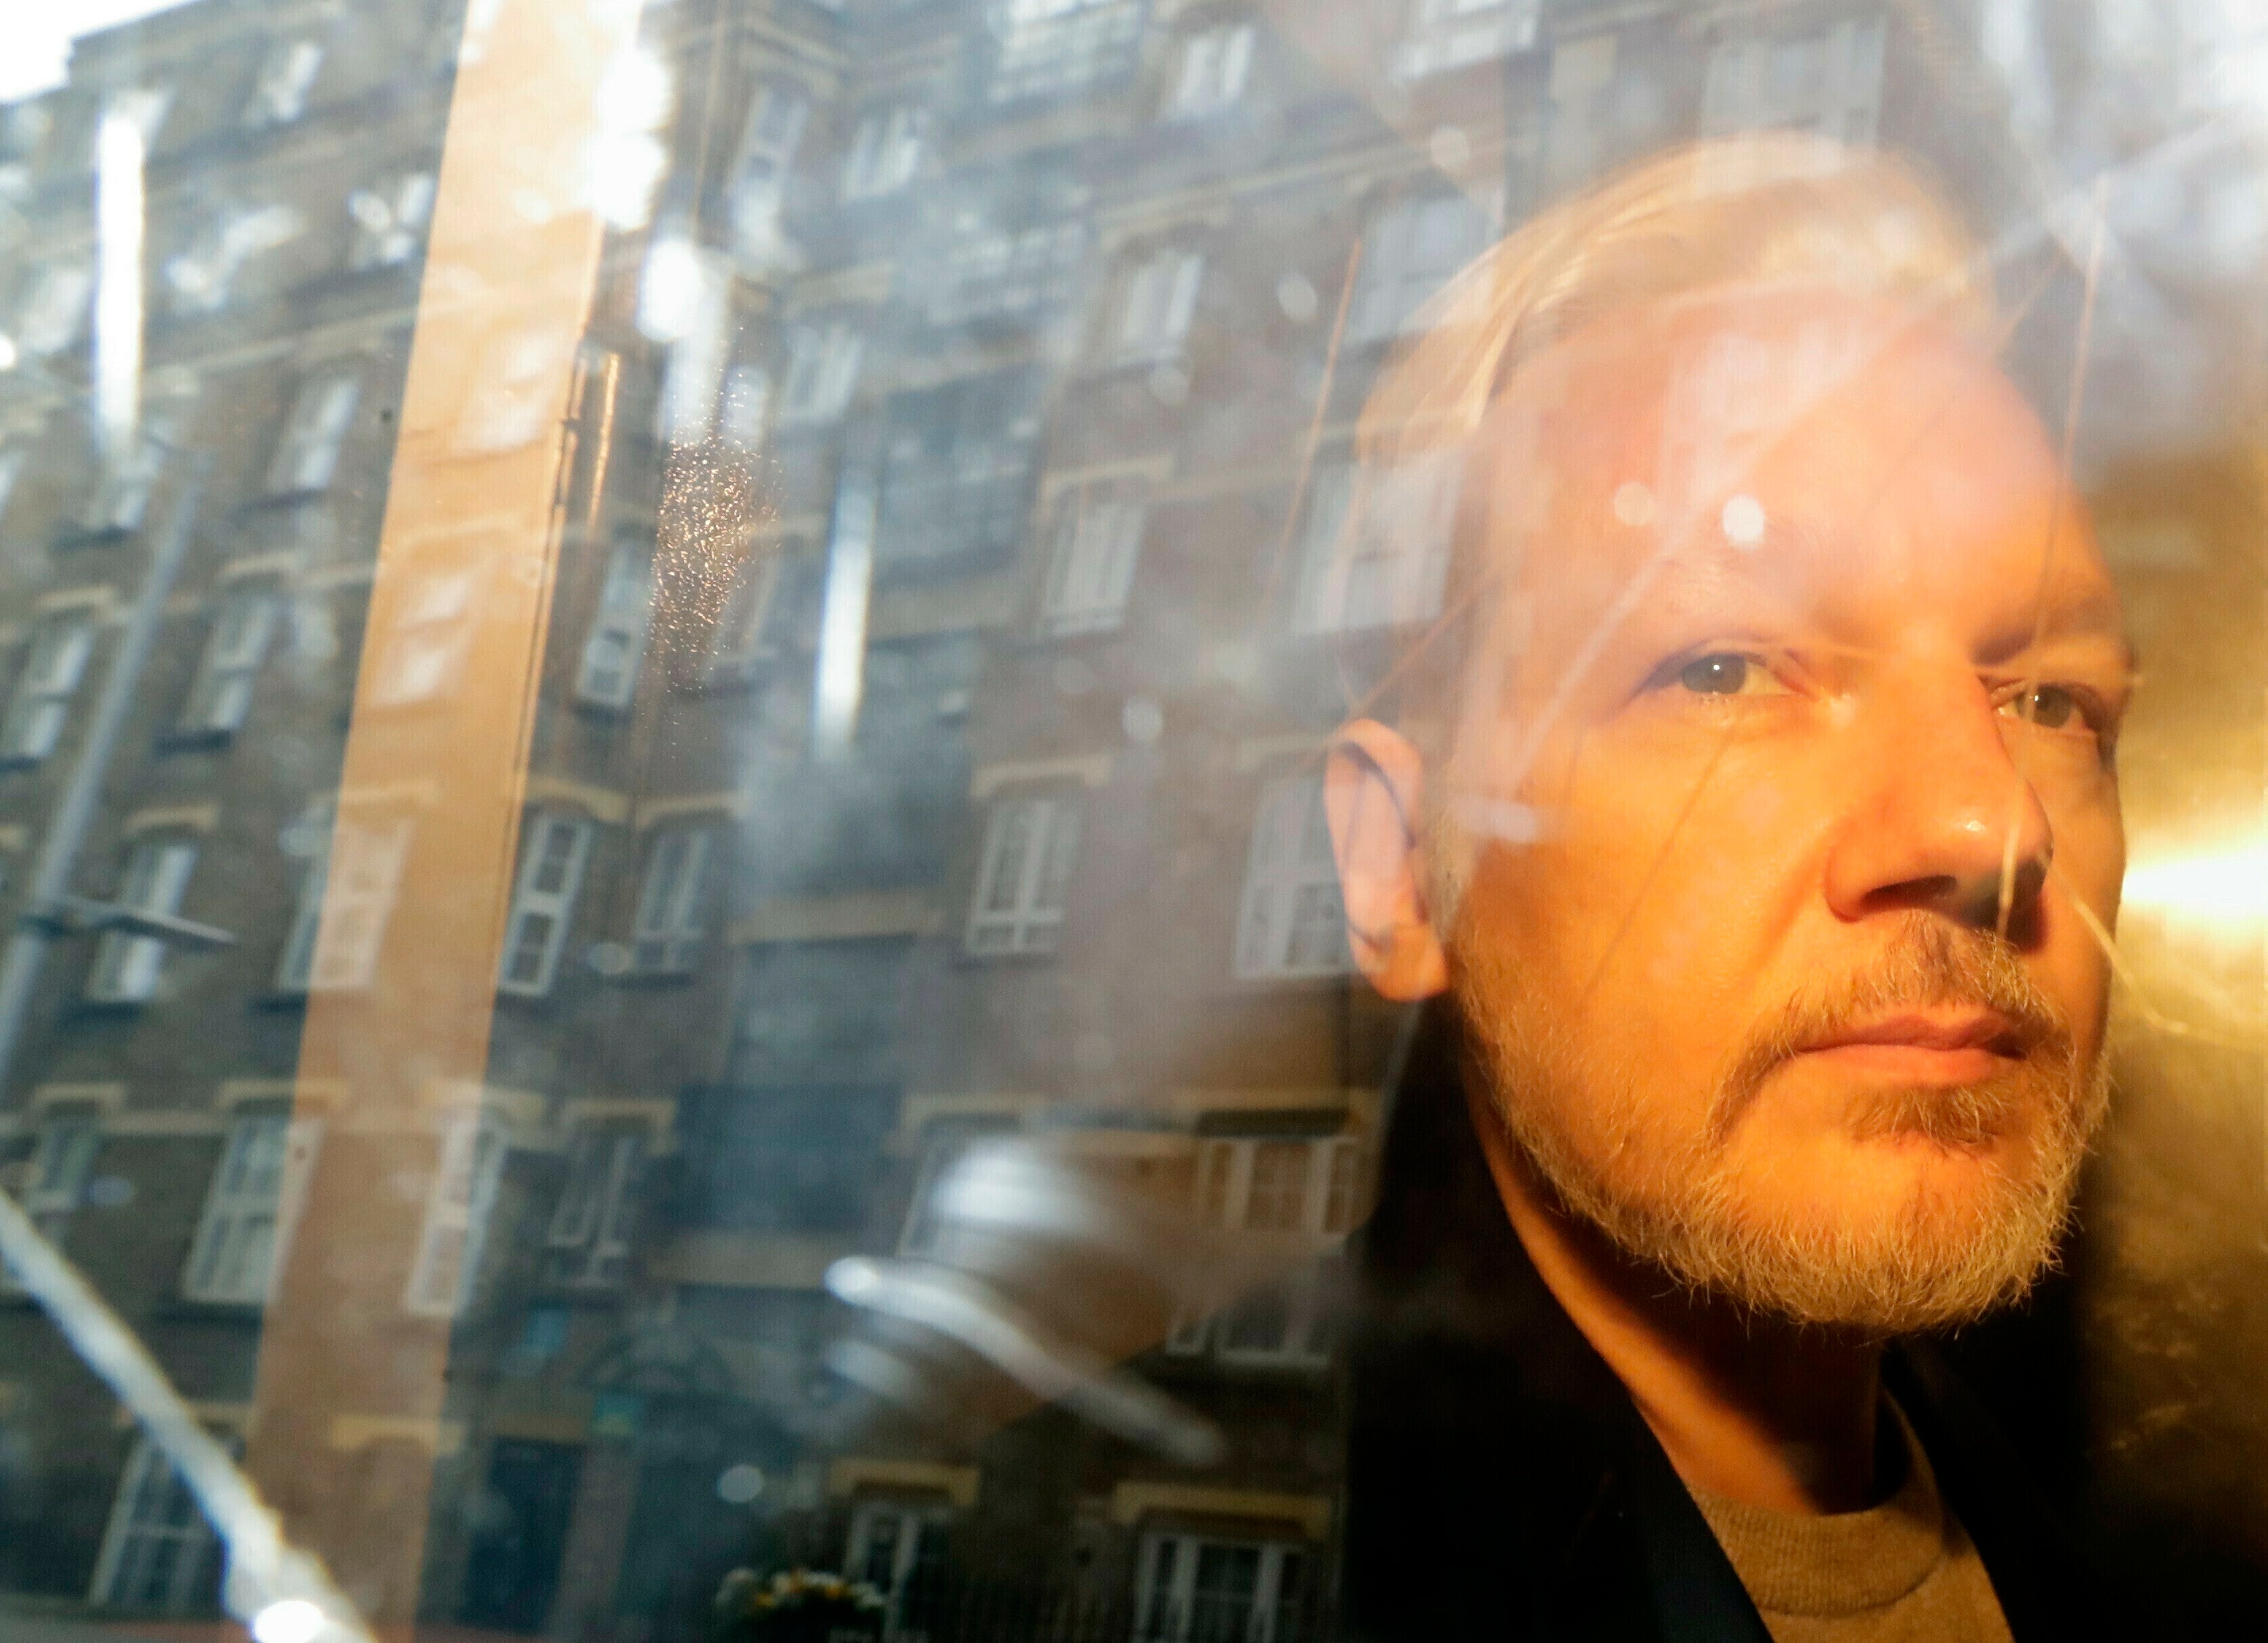 Trump victory in US will be bad news for Julian Assange, says lawyer